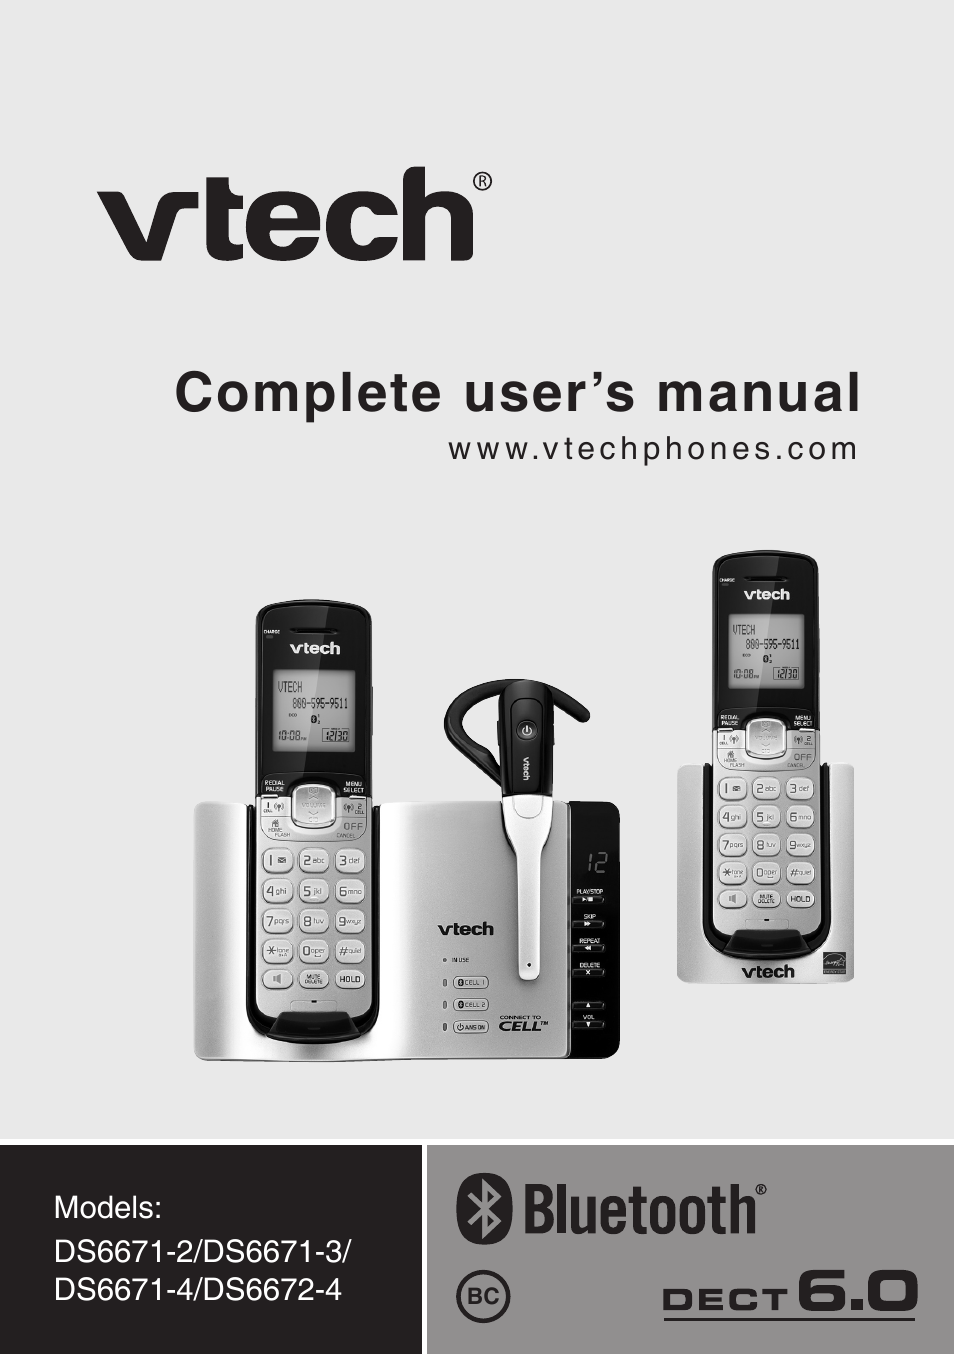 Vtech Ds6672 4 Manual User Manual 110 Pages